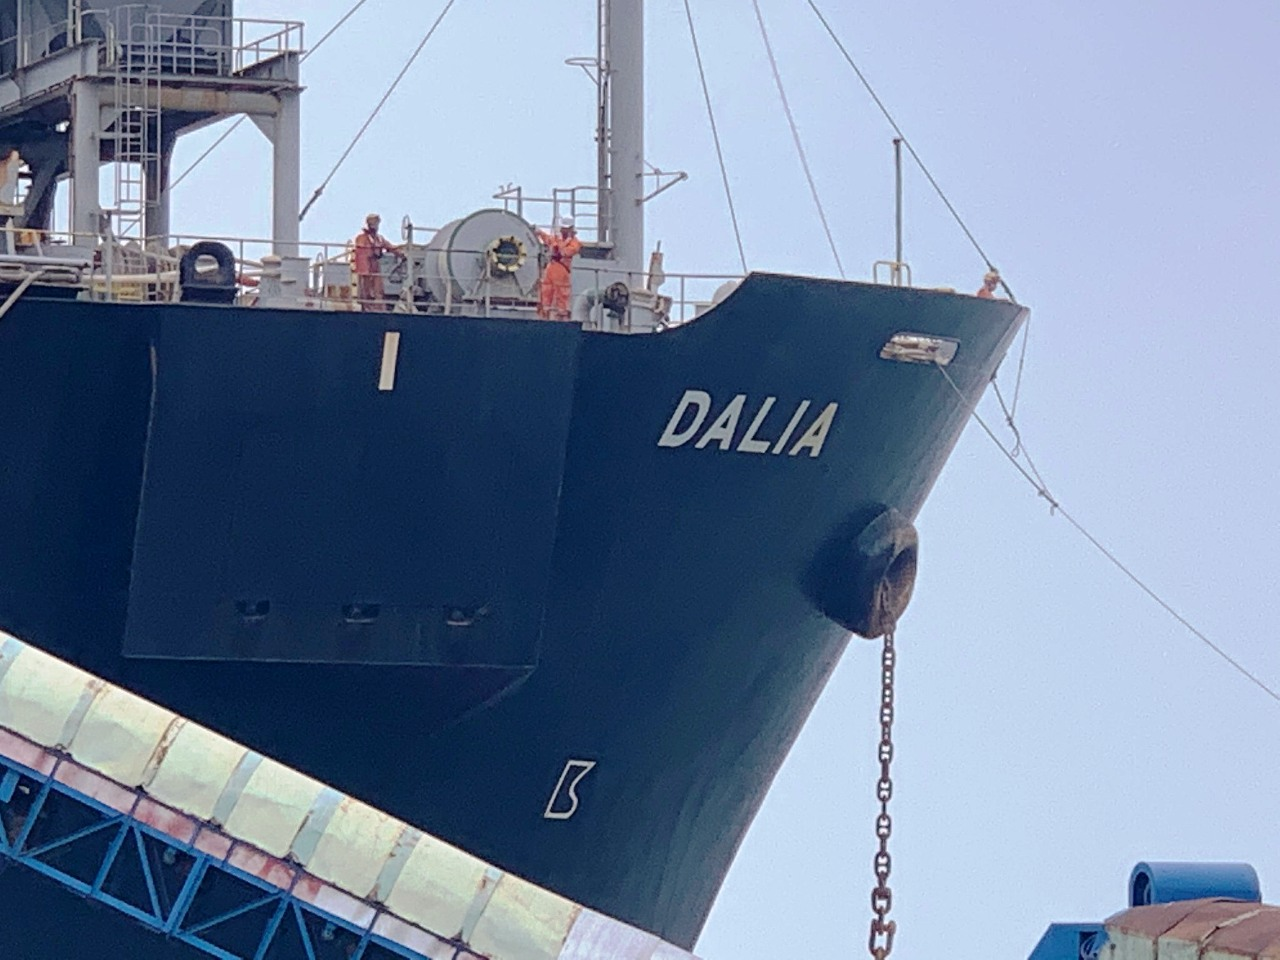 M/V Dalia at Chan May port